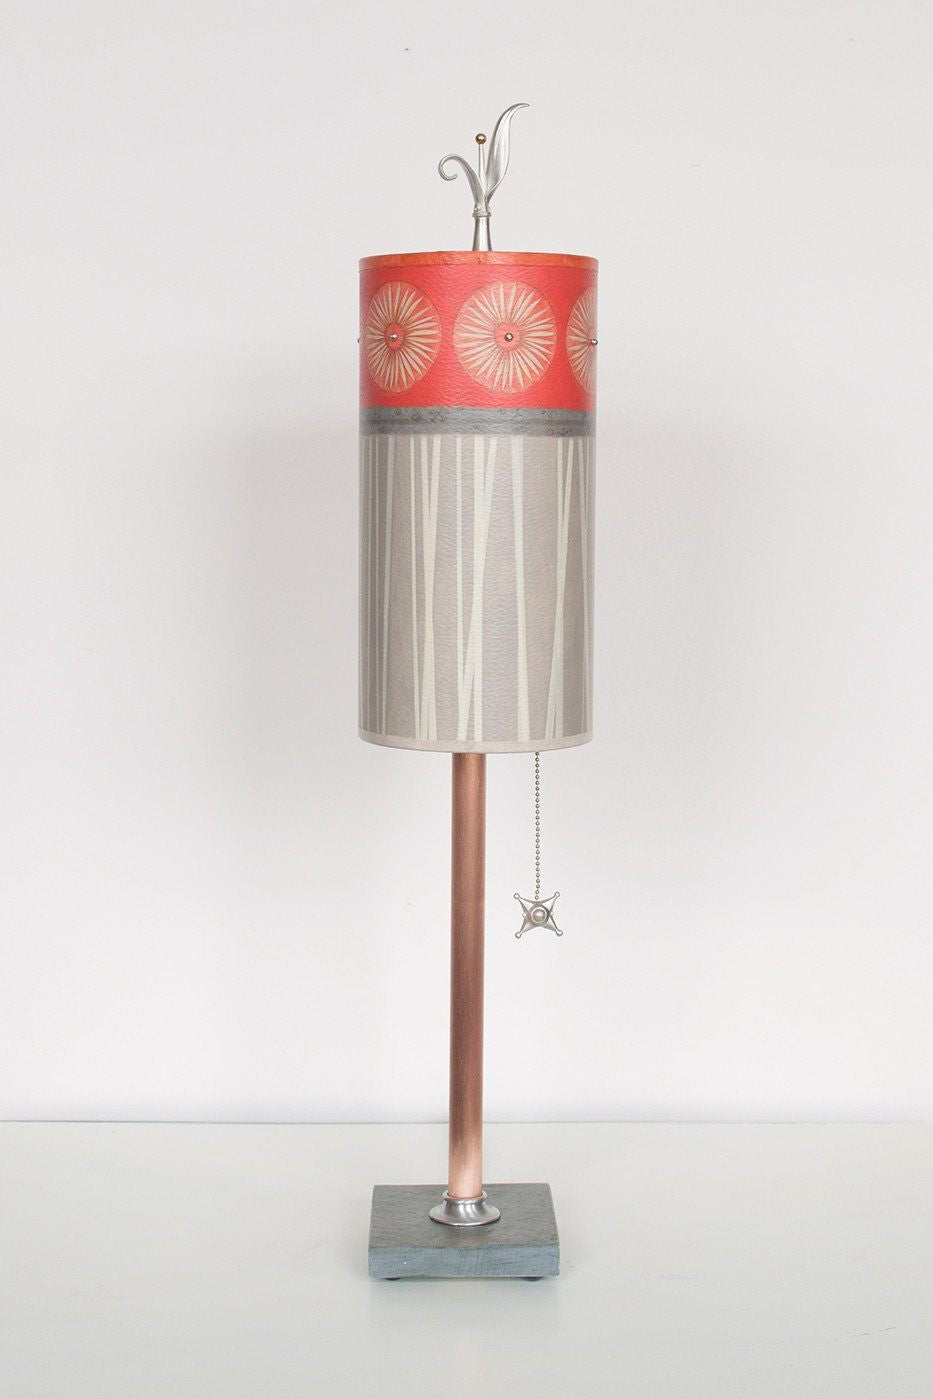 Copper Table Lamp on Vermont Slate with Small Tube Shade in Tang